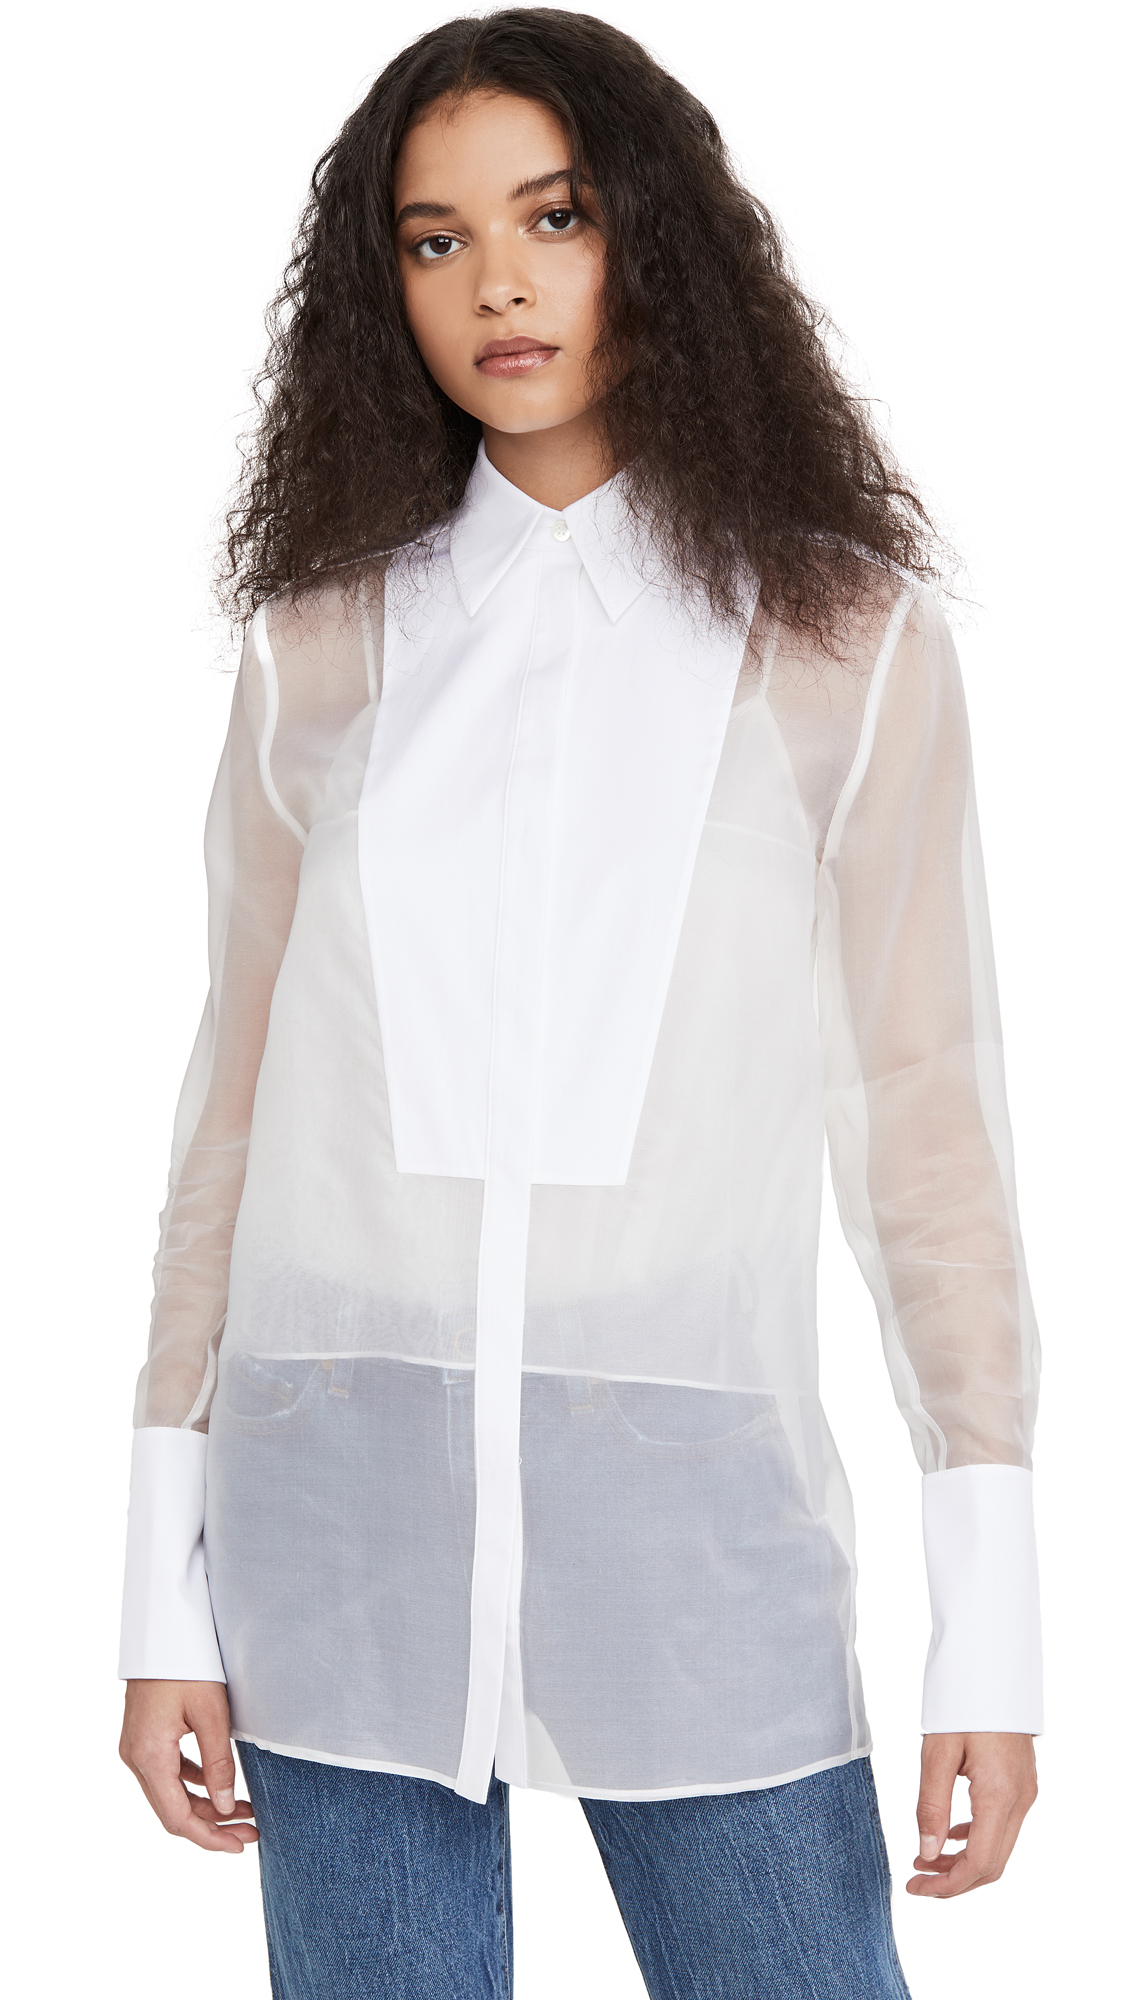 Victoria Victoria Beckham Bib Detail Sheer Shirt - 30% Off Sale